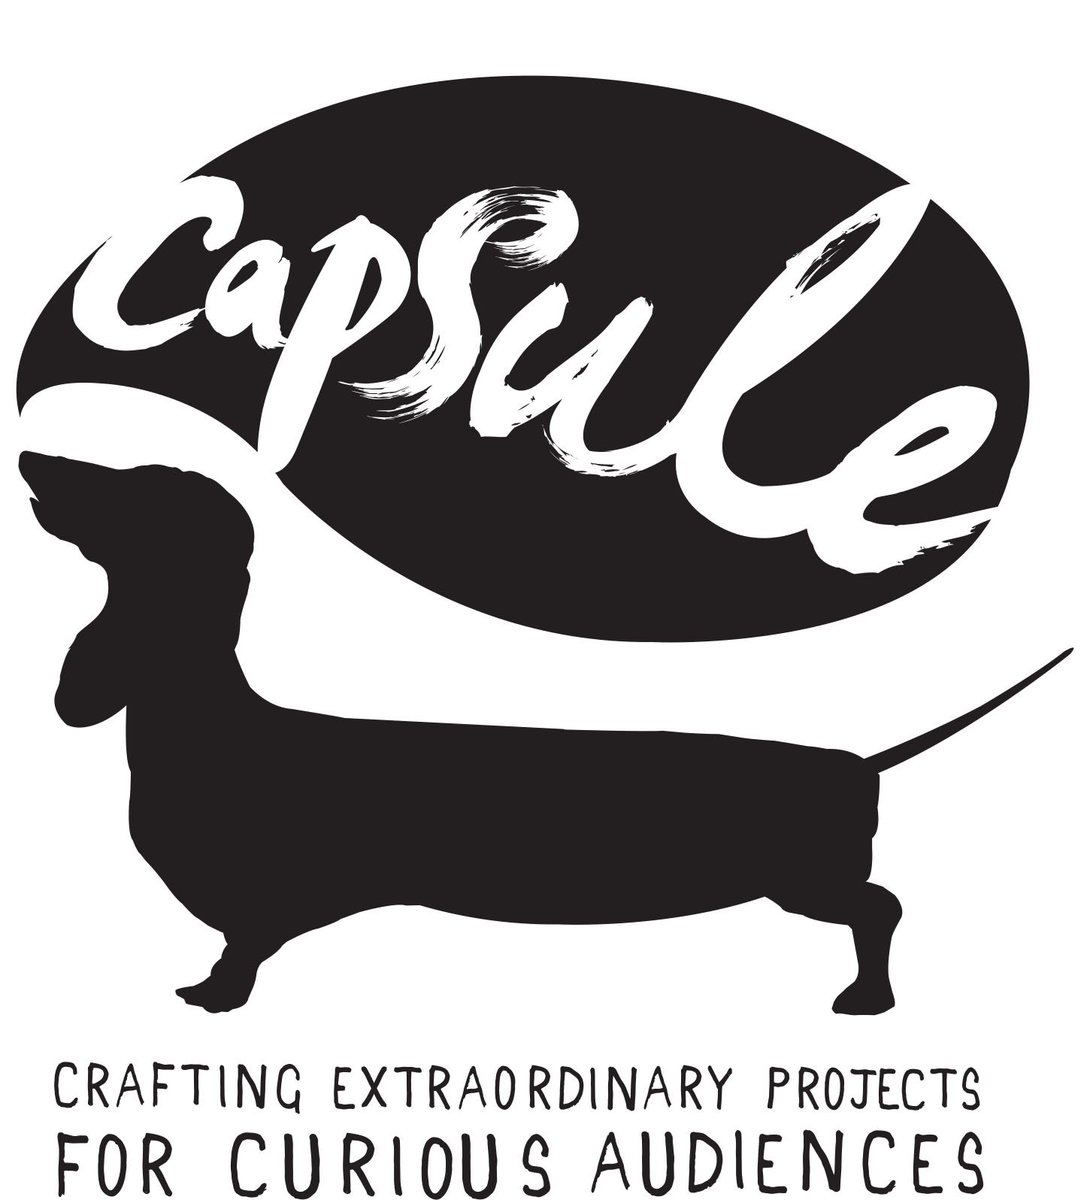 Join the Capsule Team - we're recruiting for an Executive Producer https://t.co/yO3wKlH0tH https://t.co/3EJ9037fIO